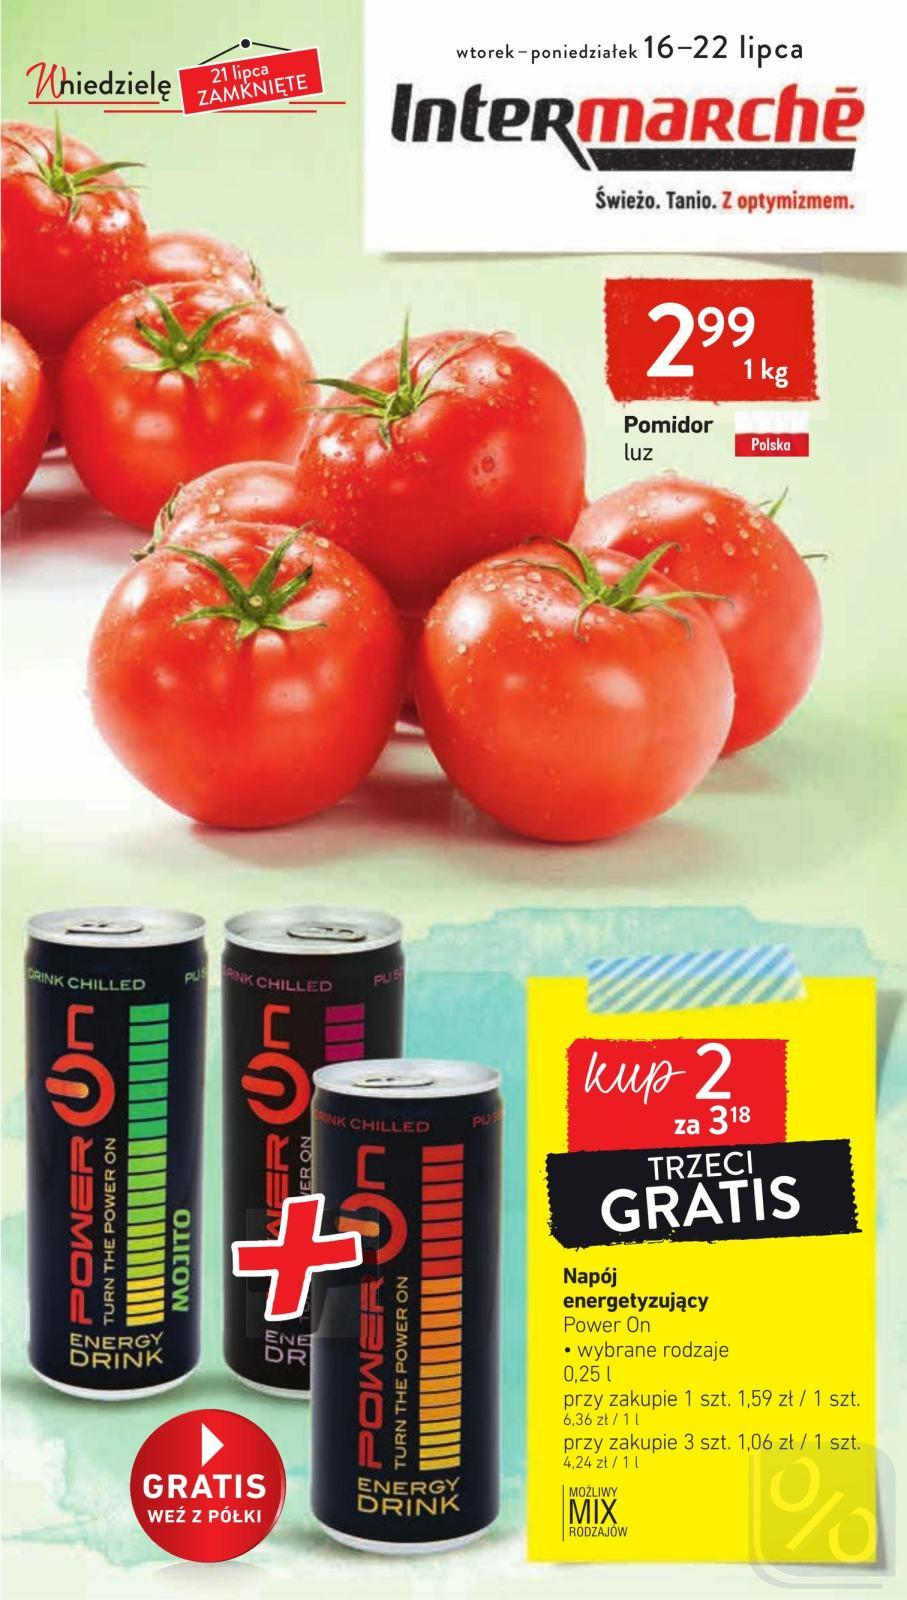 Gazetka promocyjna Intermarche do 22/07/2019 str.1